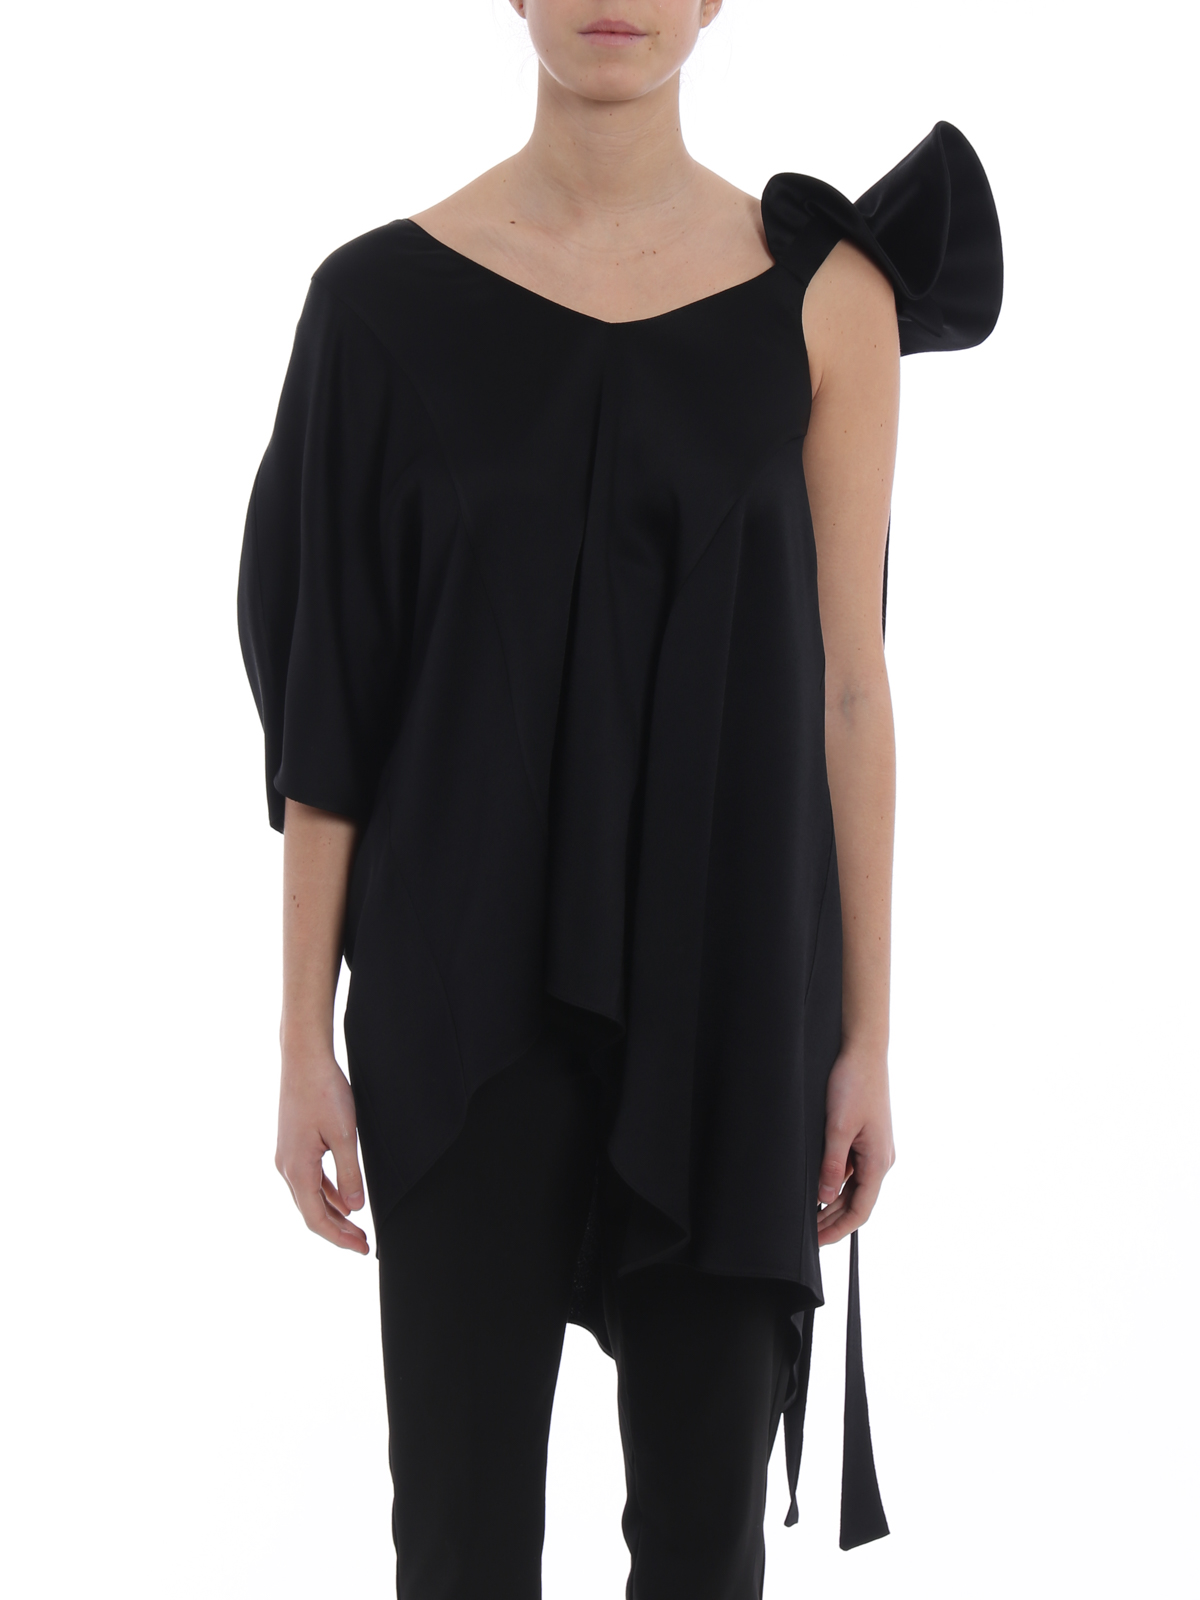 draped chlo iconic product drapes milk modesens blouse